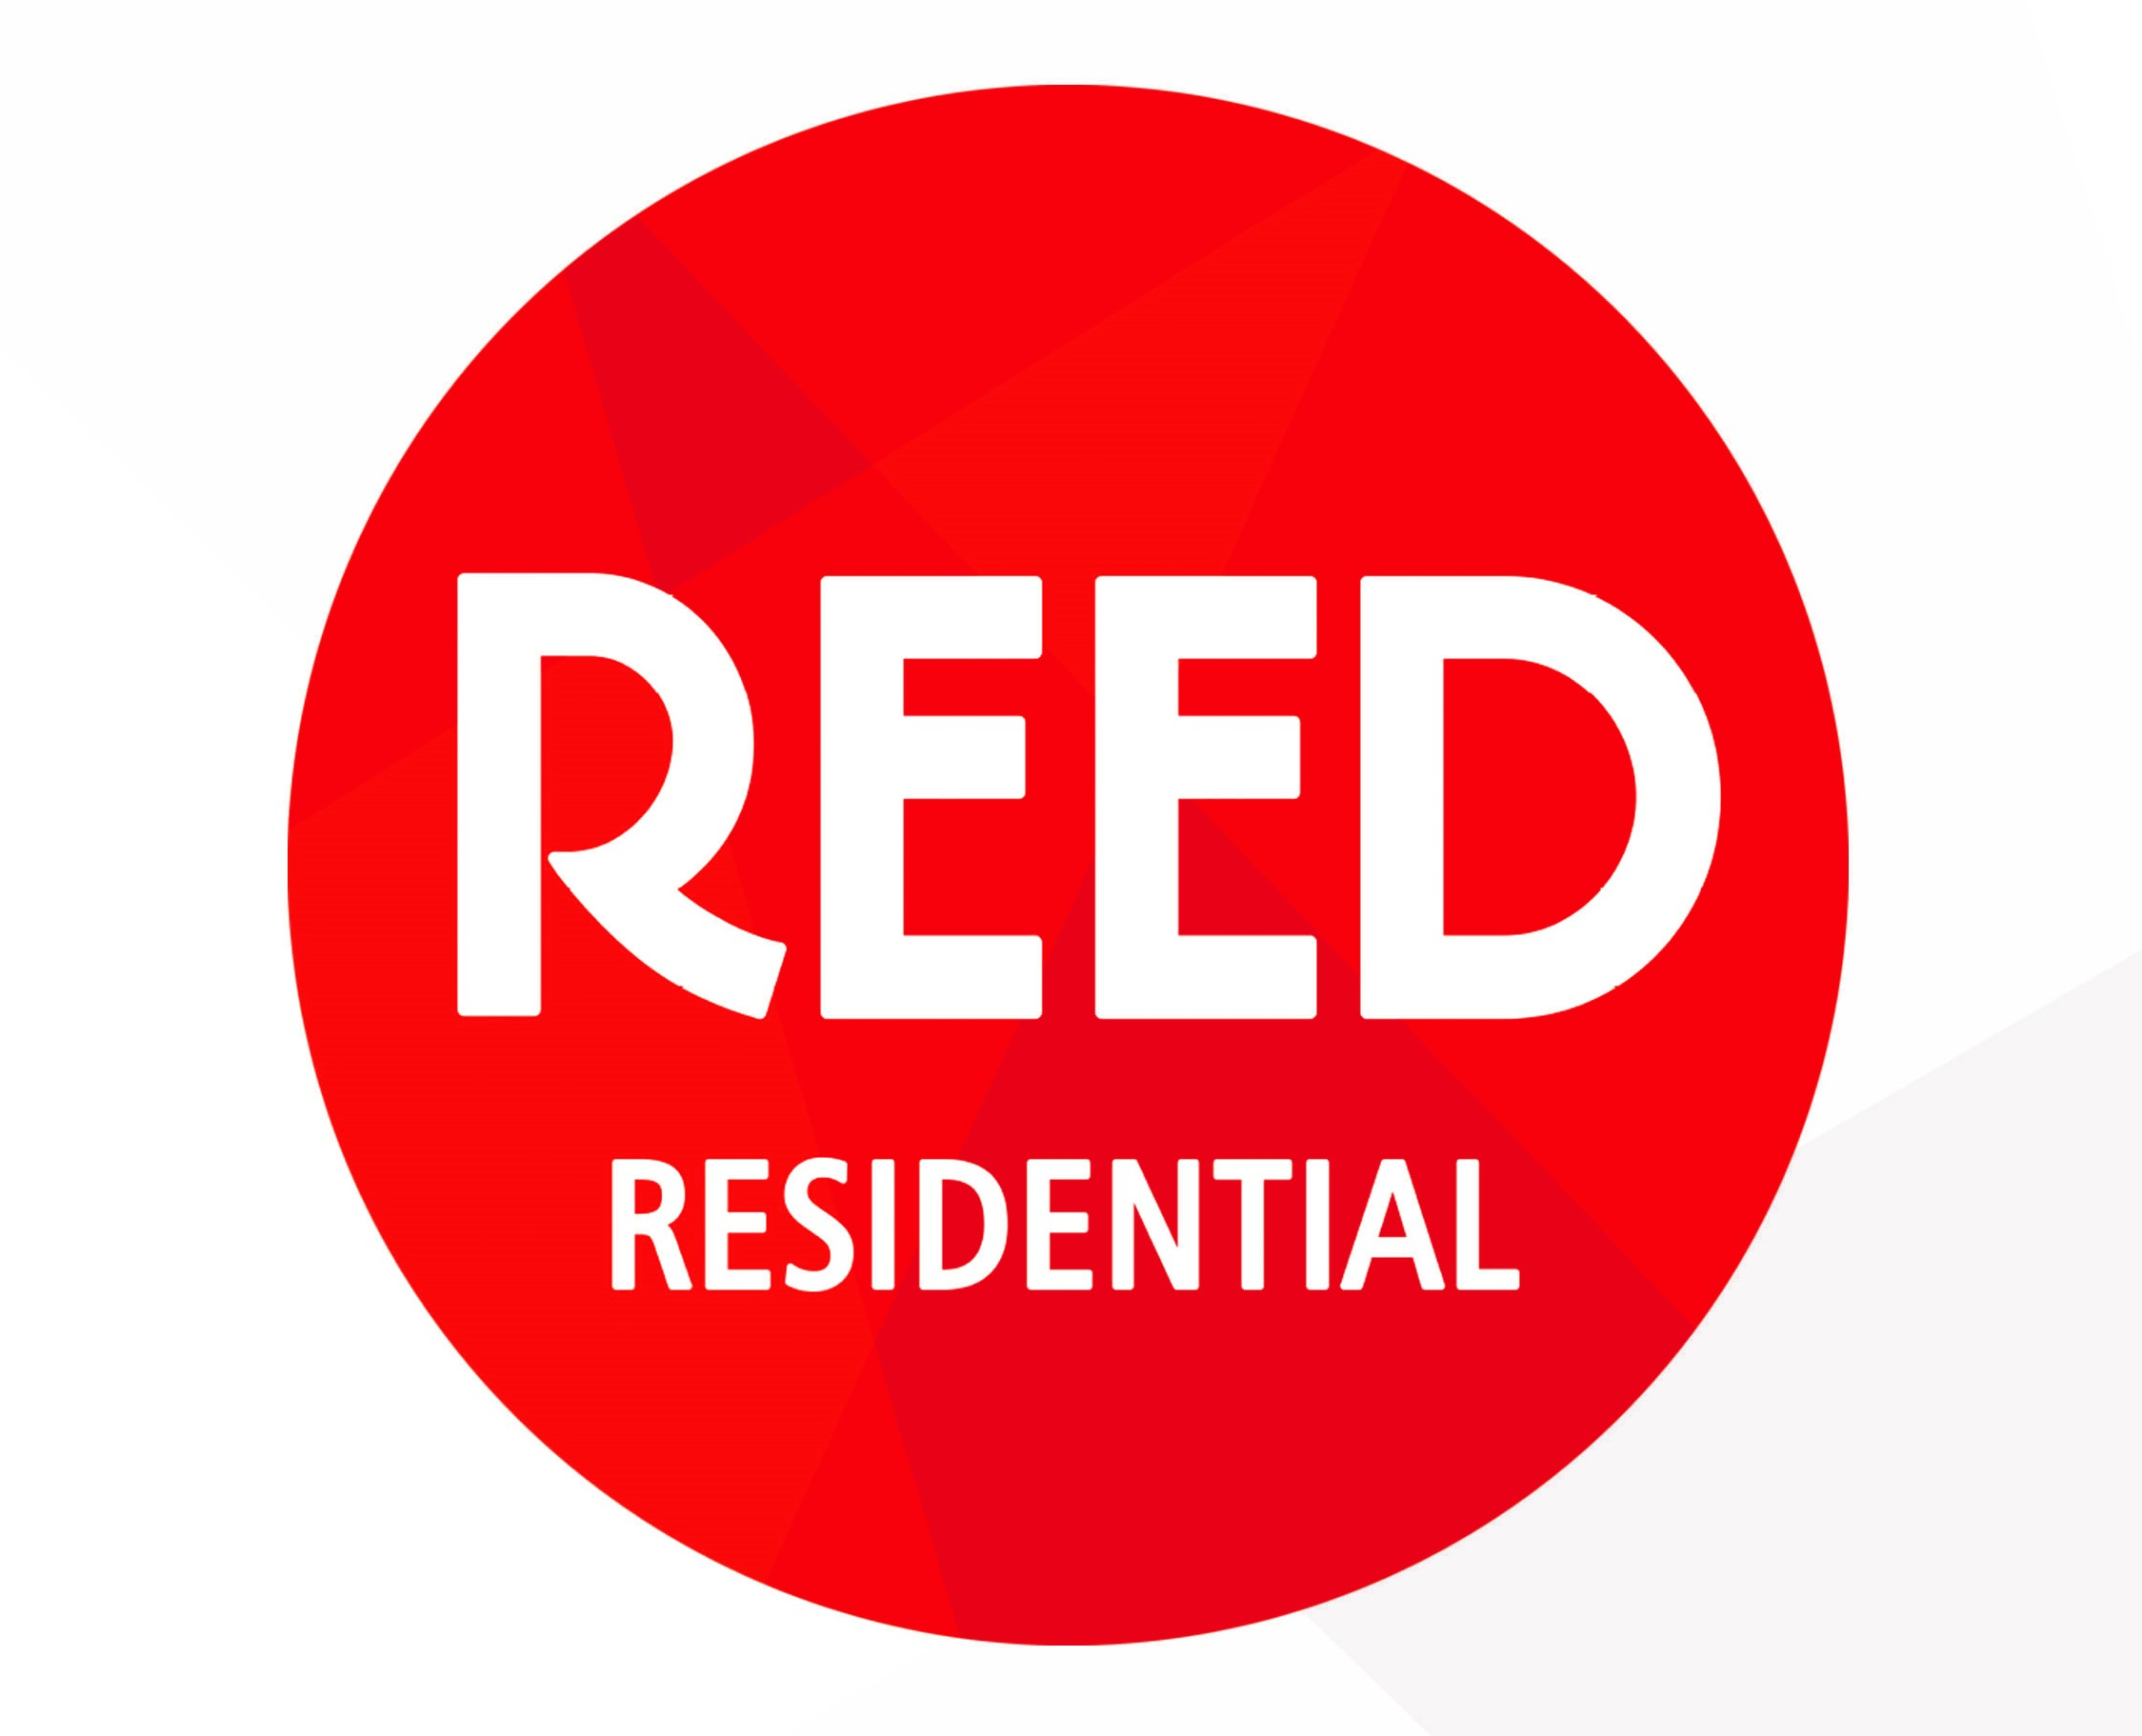 Reed Residential - Westcliff on Sea : Letting agents in West Bridgford Nottinghamshire